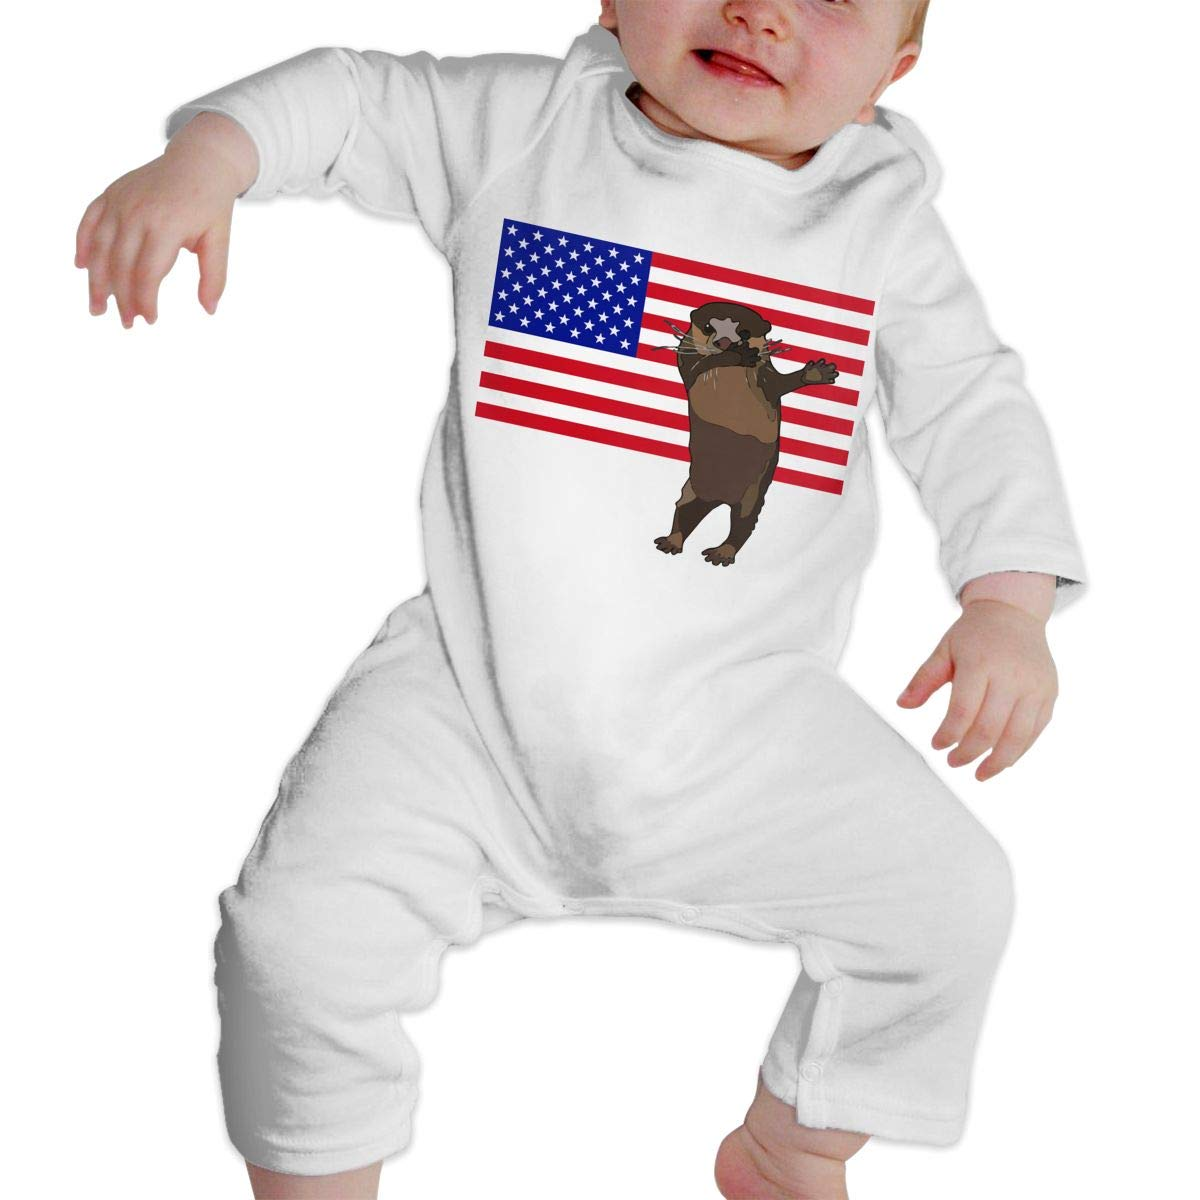 A1BY-5US Newborn Baby Boys Girls Cotton Long Sleeve Dabbing Sea Otter Romper Bodysuit One-Piece Romper Clothes